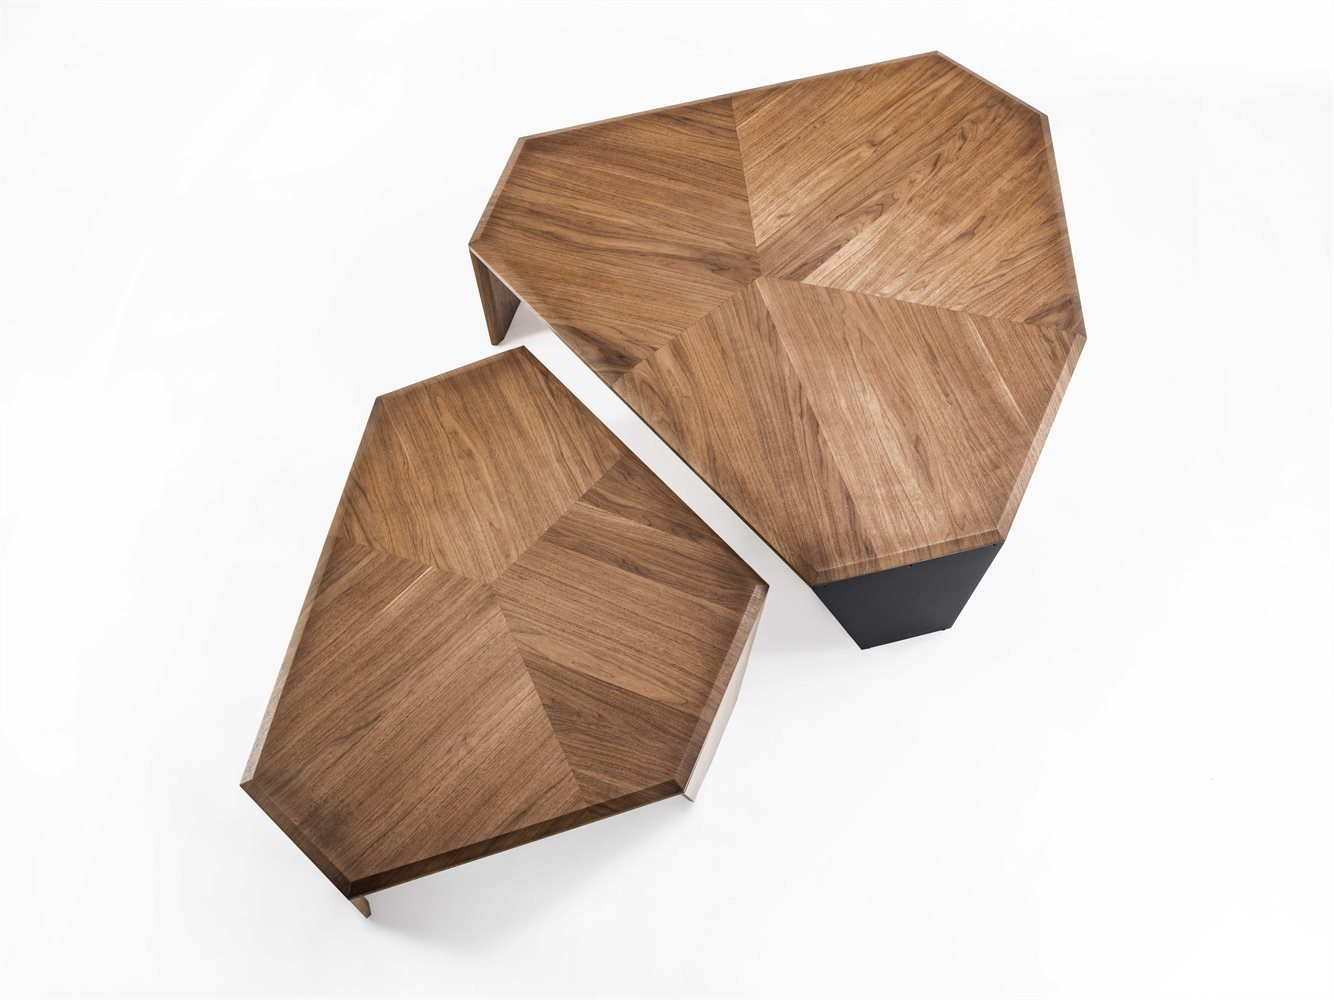 Tortuga coffee table from Porada, designed by Jiun Ho